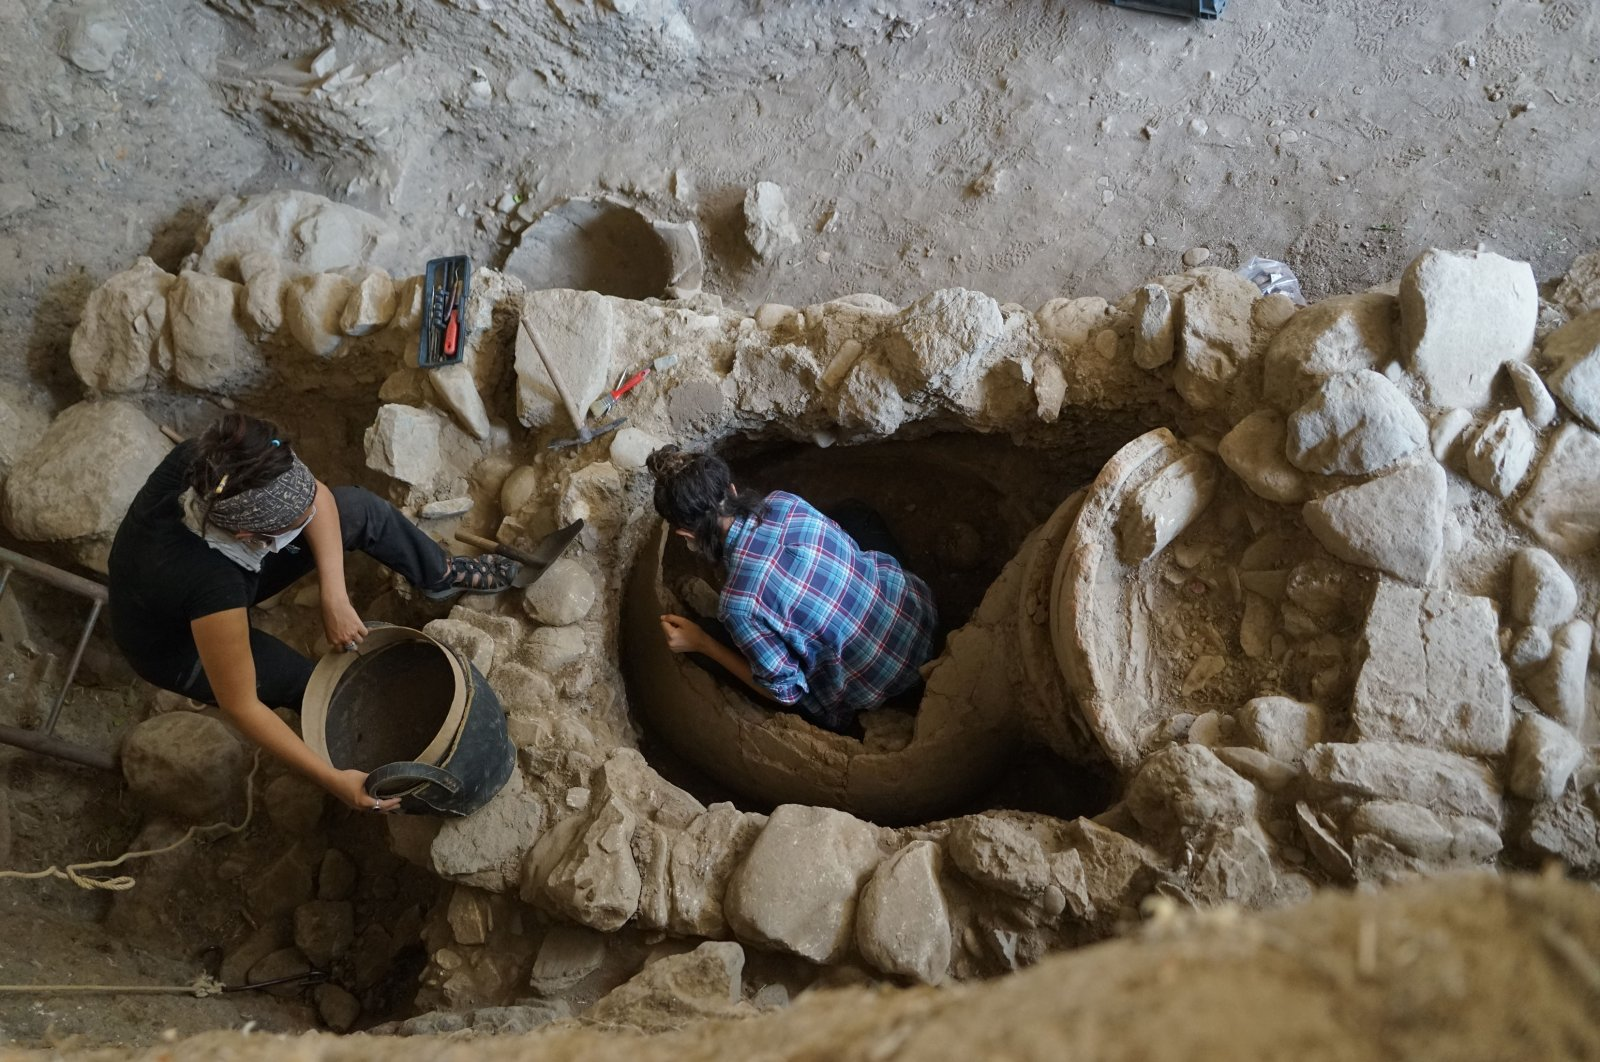 Archaeologists work at the pithos burial in the ancient city of Antandros, Balıkesir, Turkey, July 31, 2021. (AA Photo)